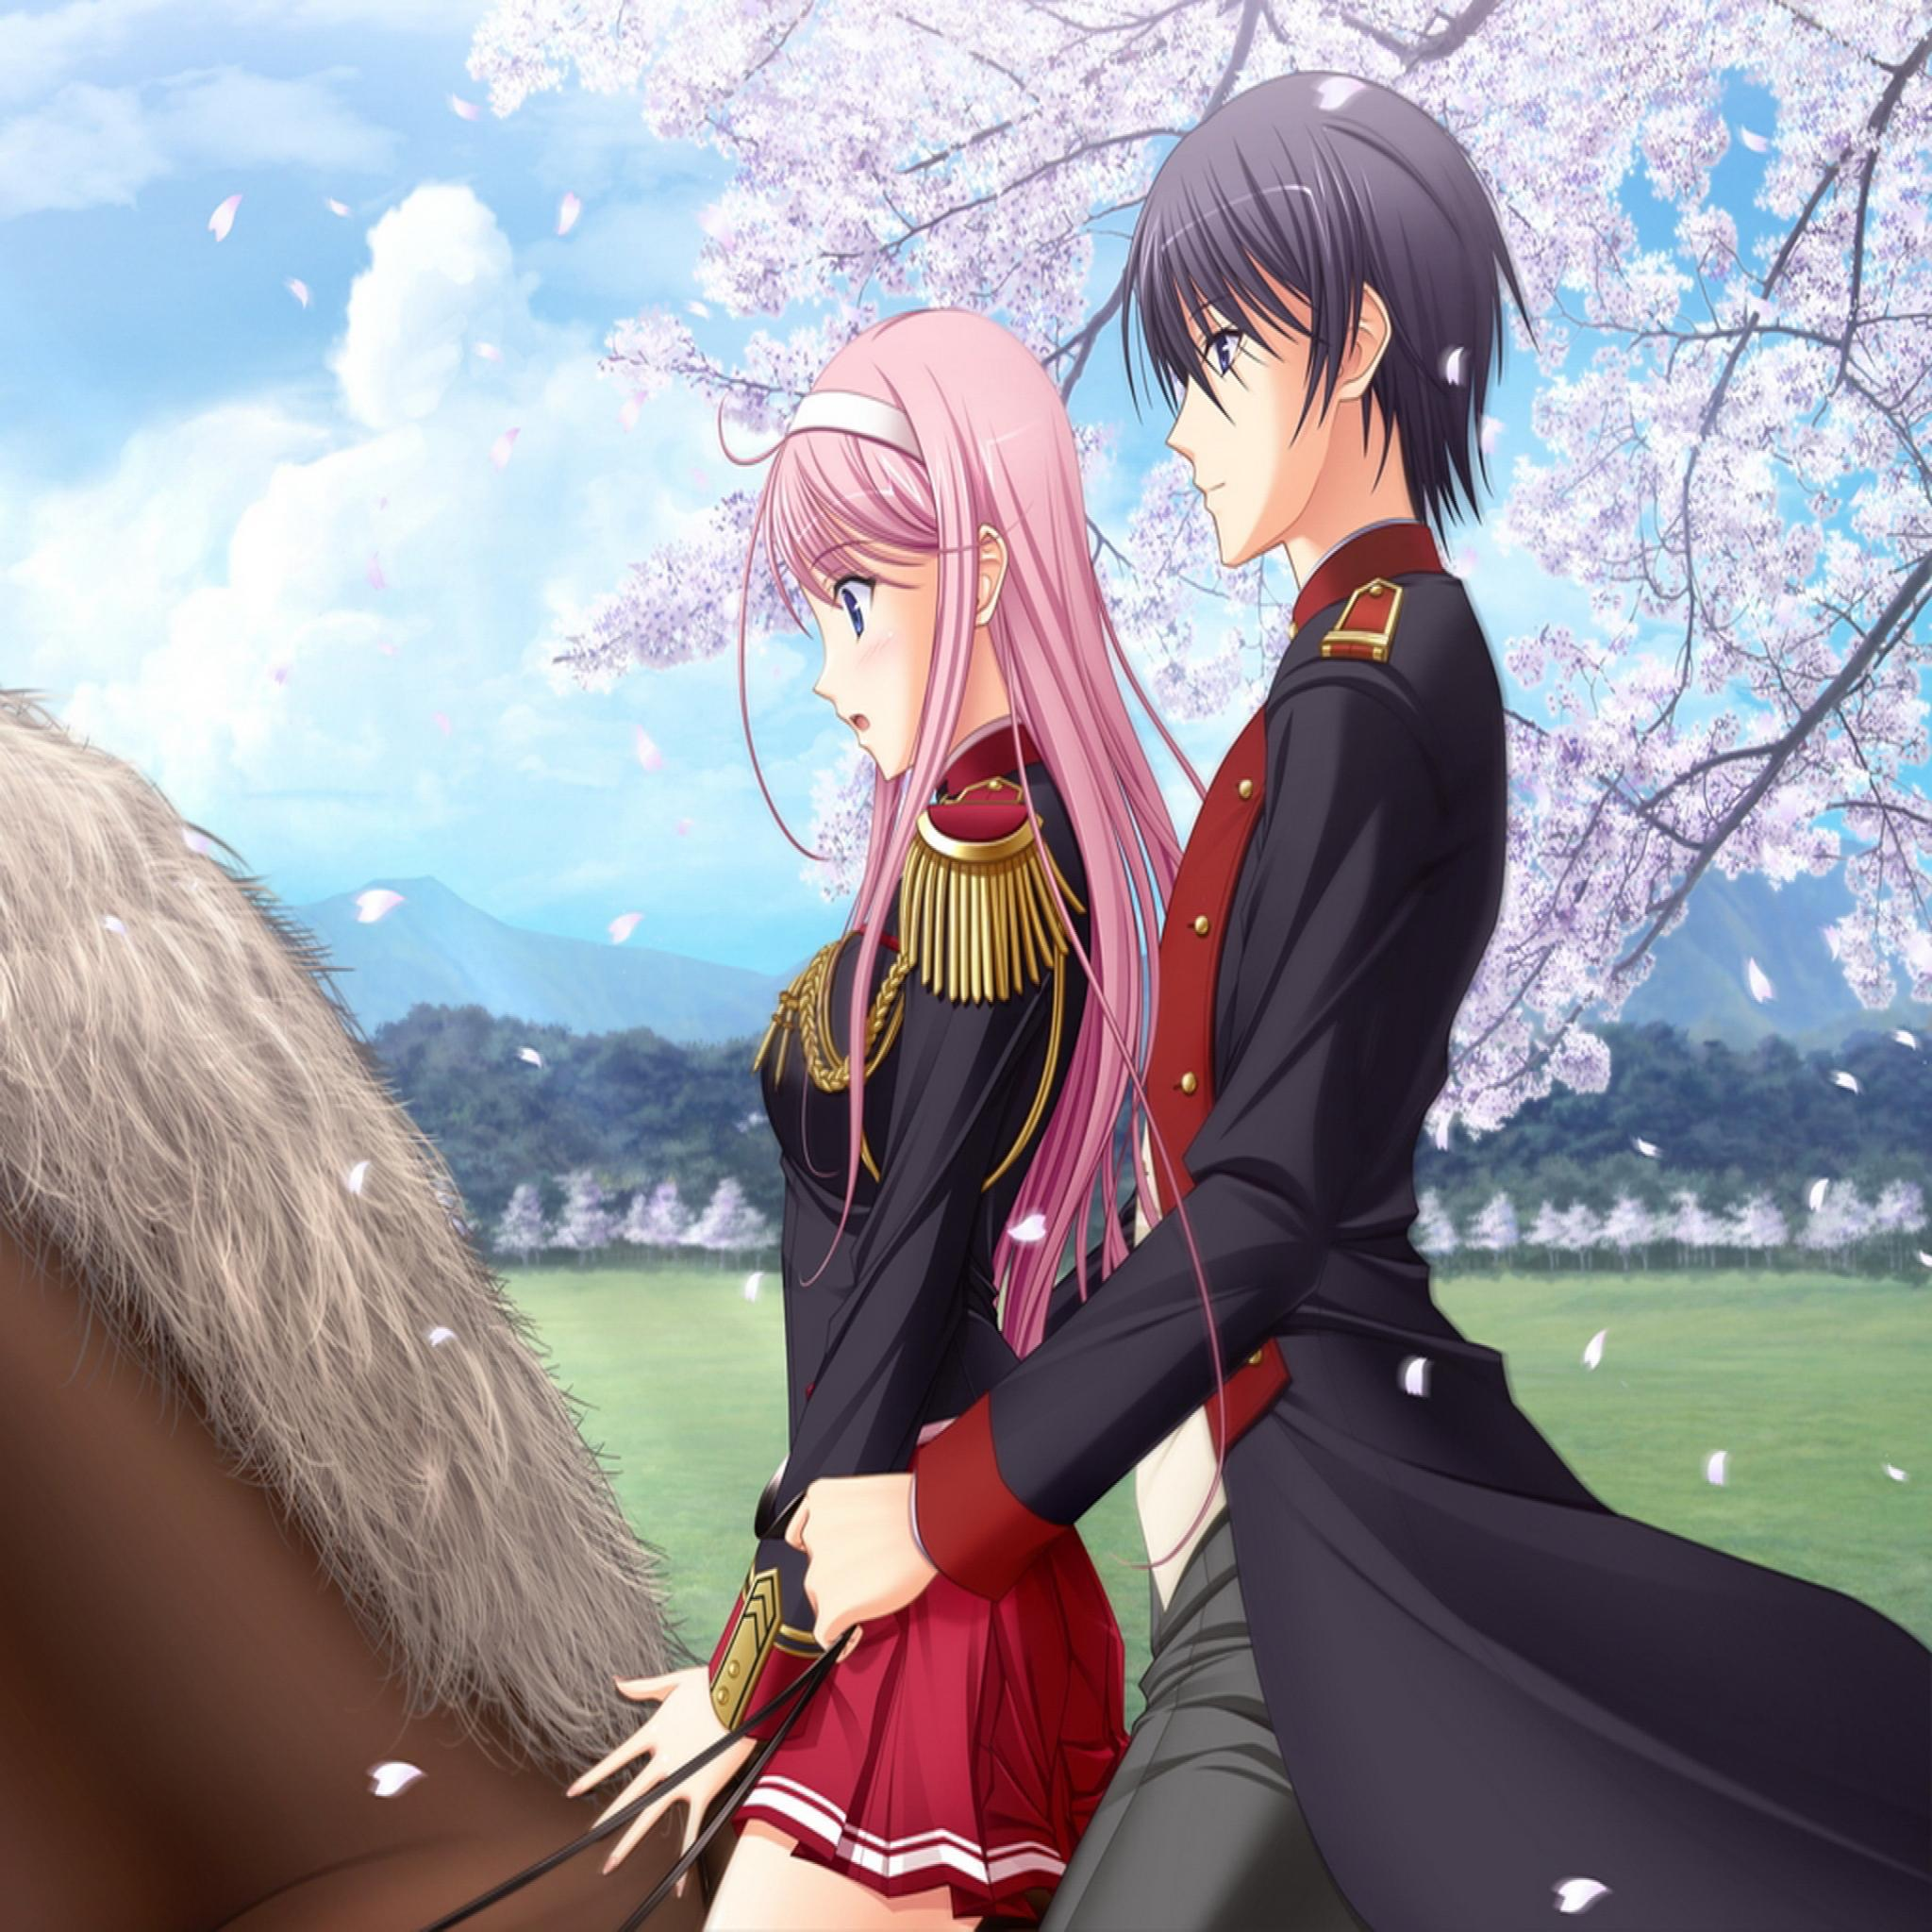 Anime In Love Pictures: Anime Love Wallpapers